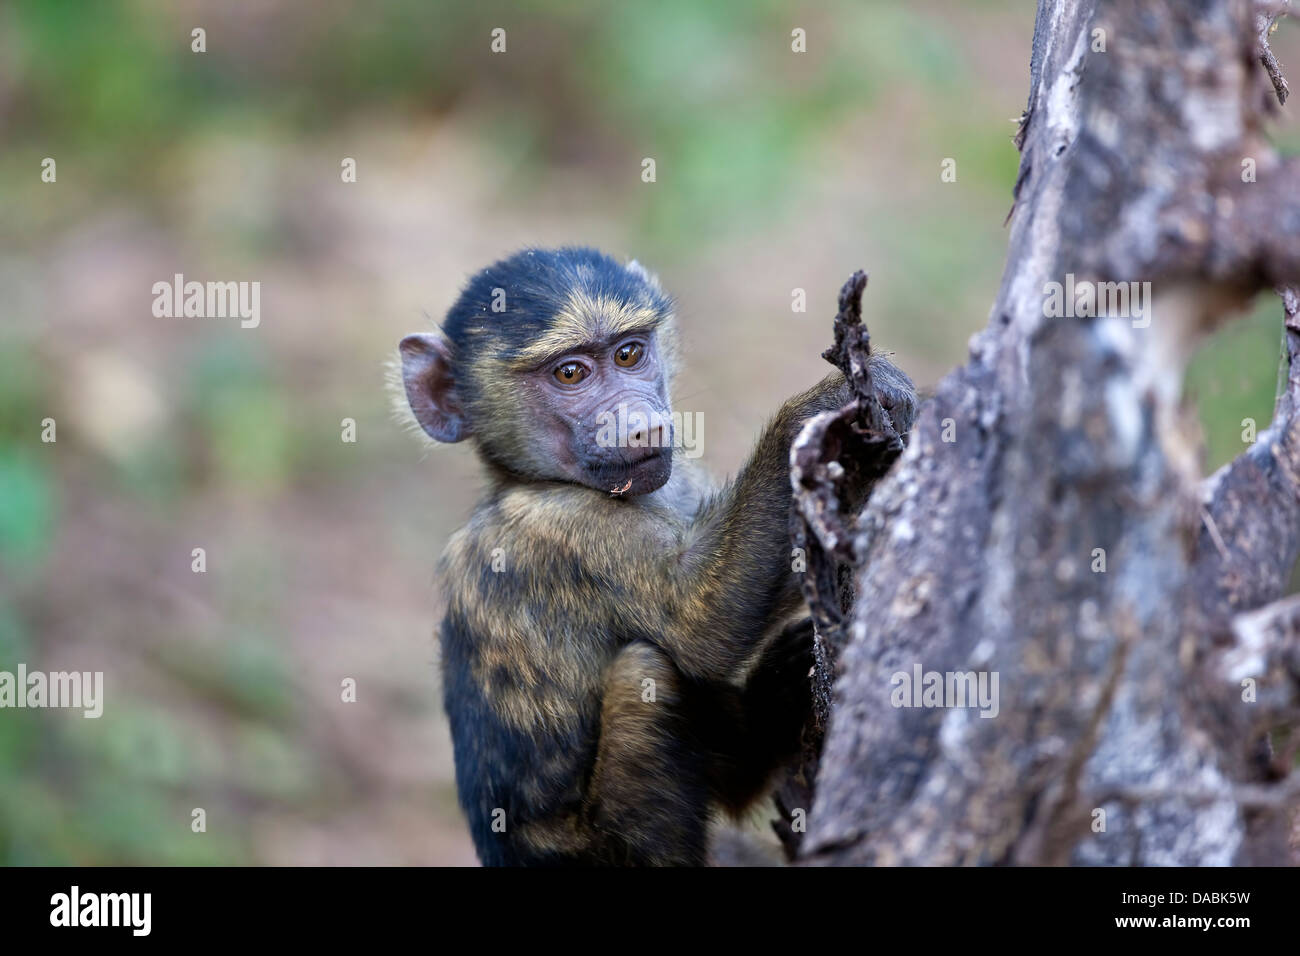 Young Olive Baboon Papio cynocephalus anubis clinging to the branch of a tree - Stock Image